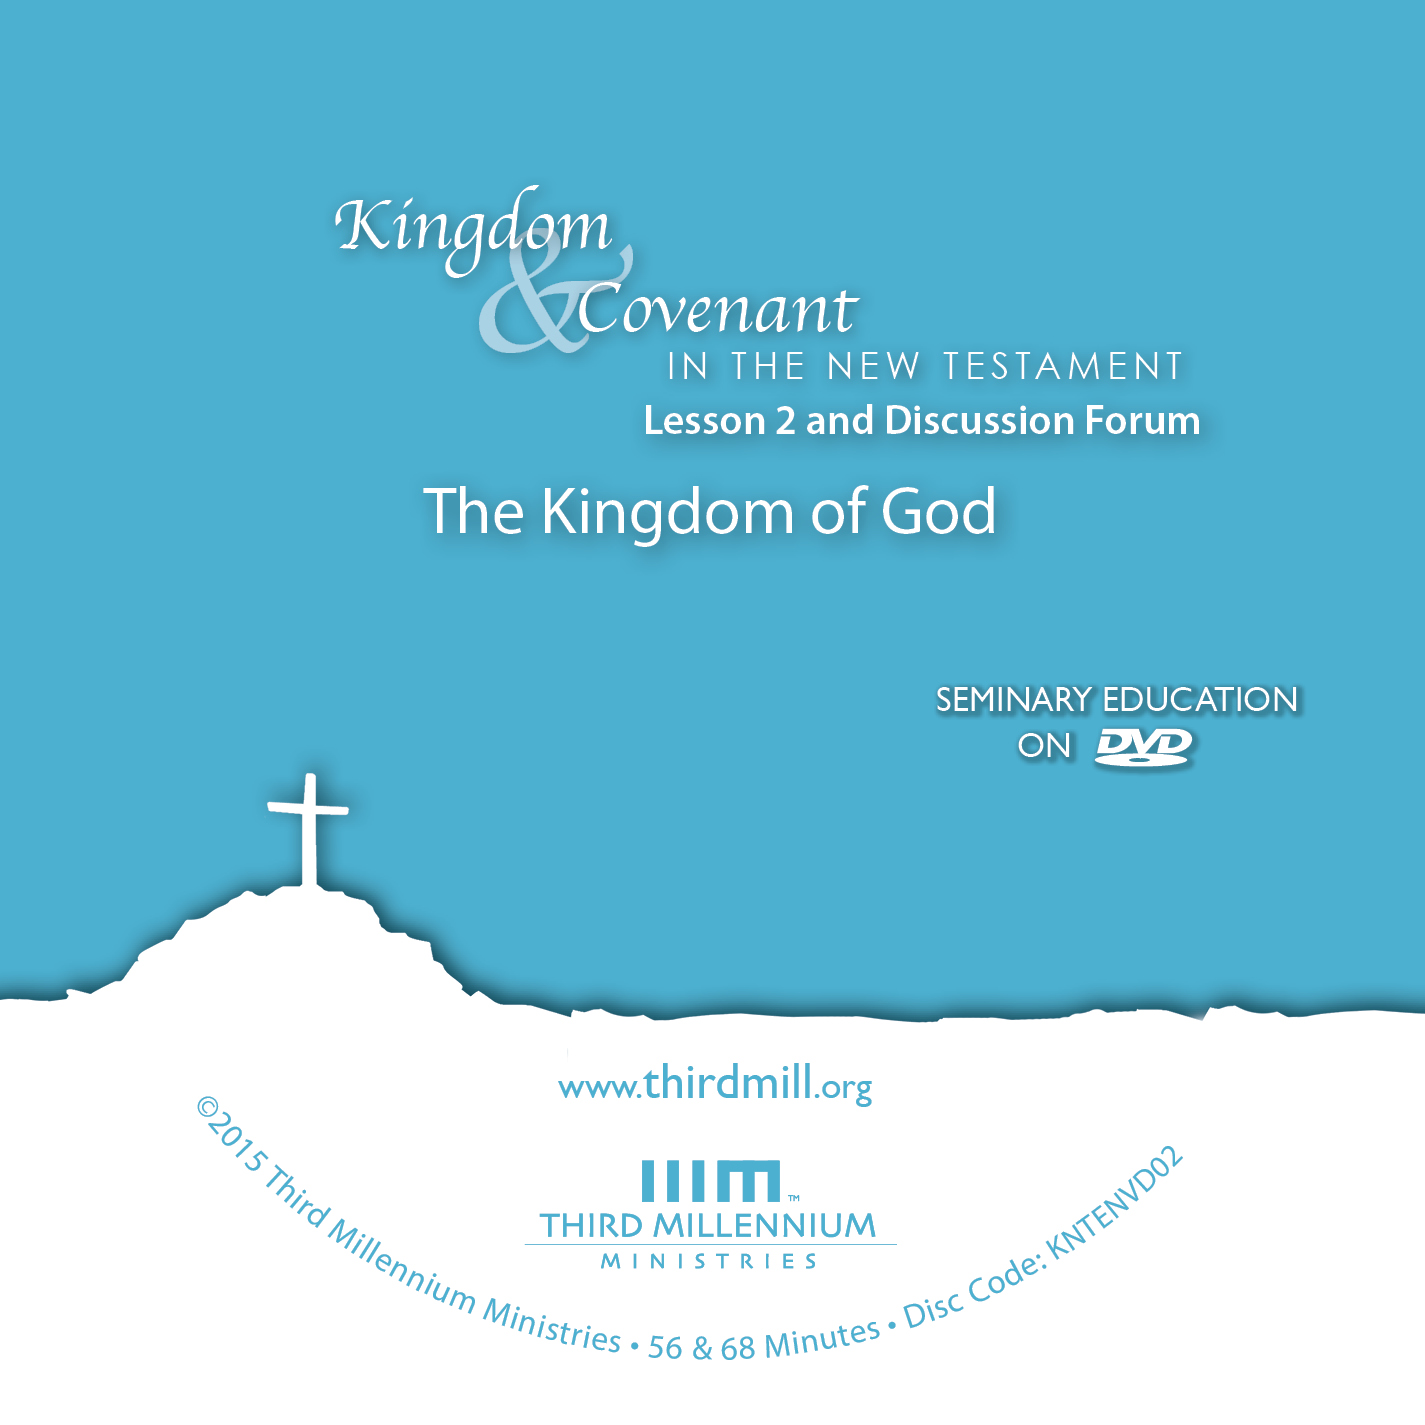 Kingdom and Covenant in the New Testament: The Kingdom of